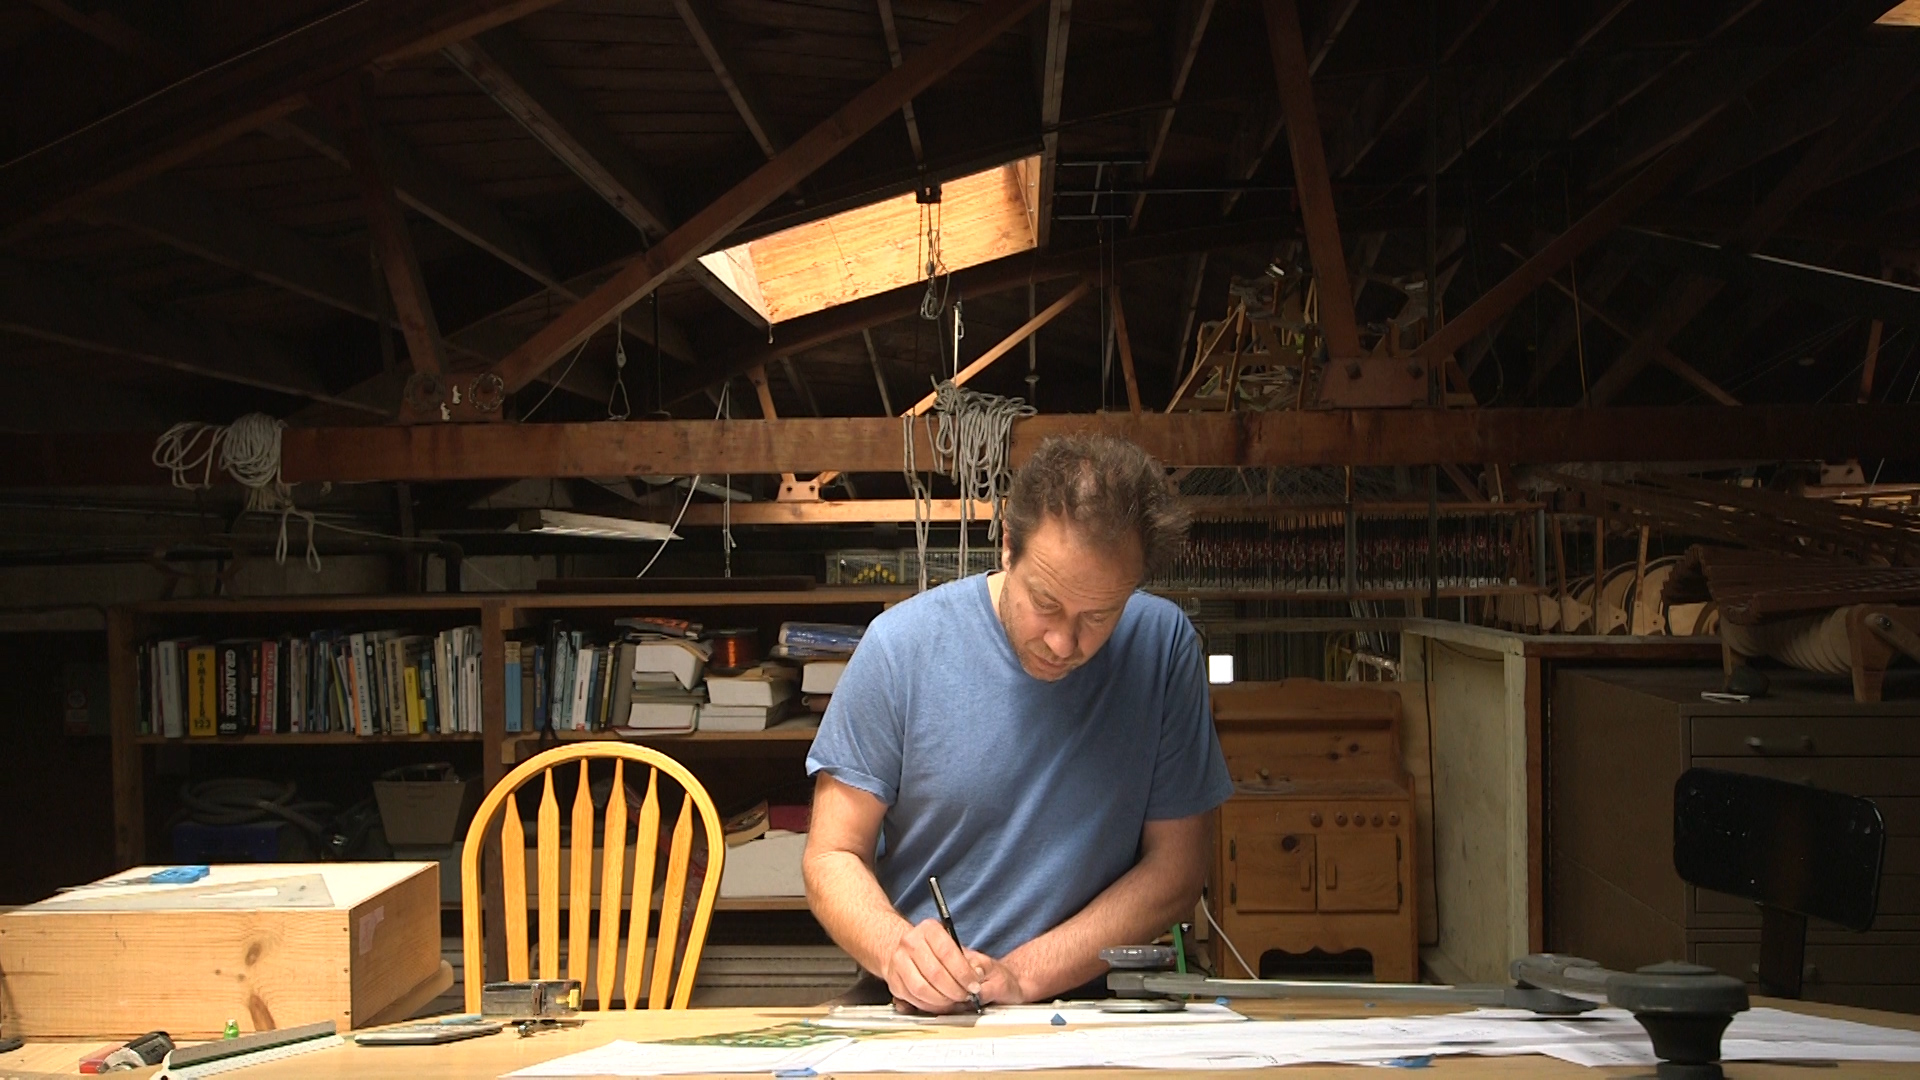 Reuben Margolin Loves Making Waves - Reuben Margolin attempts to evoke the natural world with his mechanically driven kinetic sculptures.Season 2, Episode 5Originally aired 31 October 2017